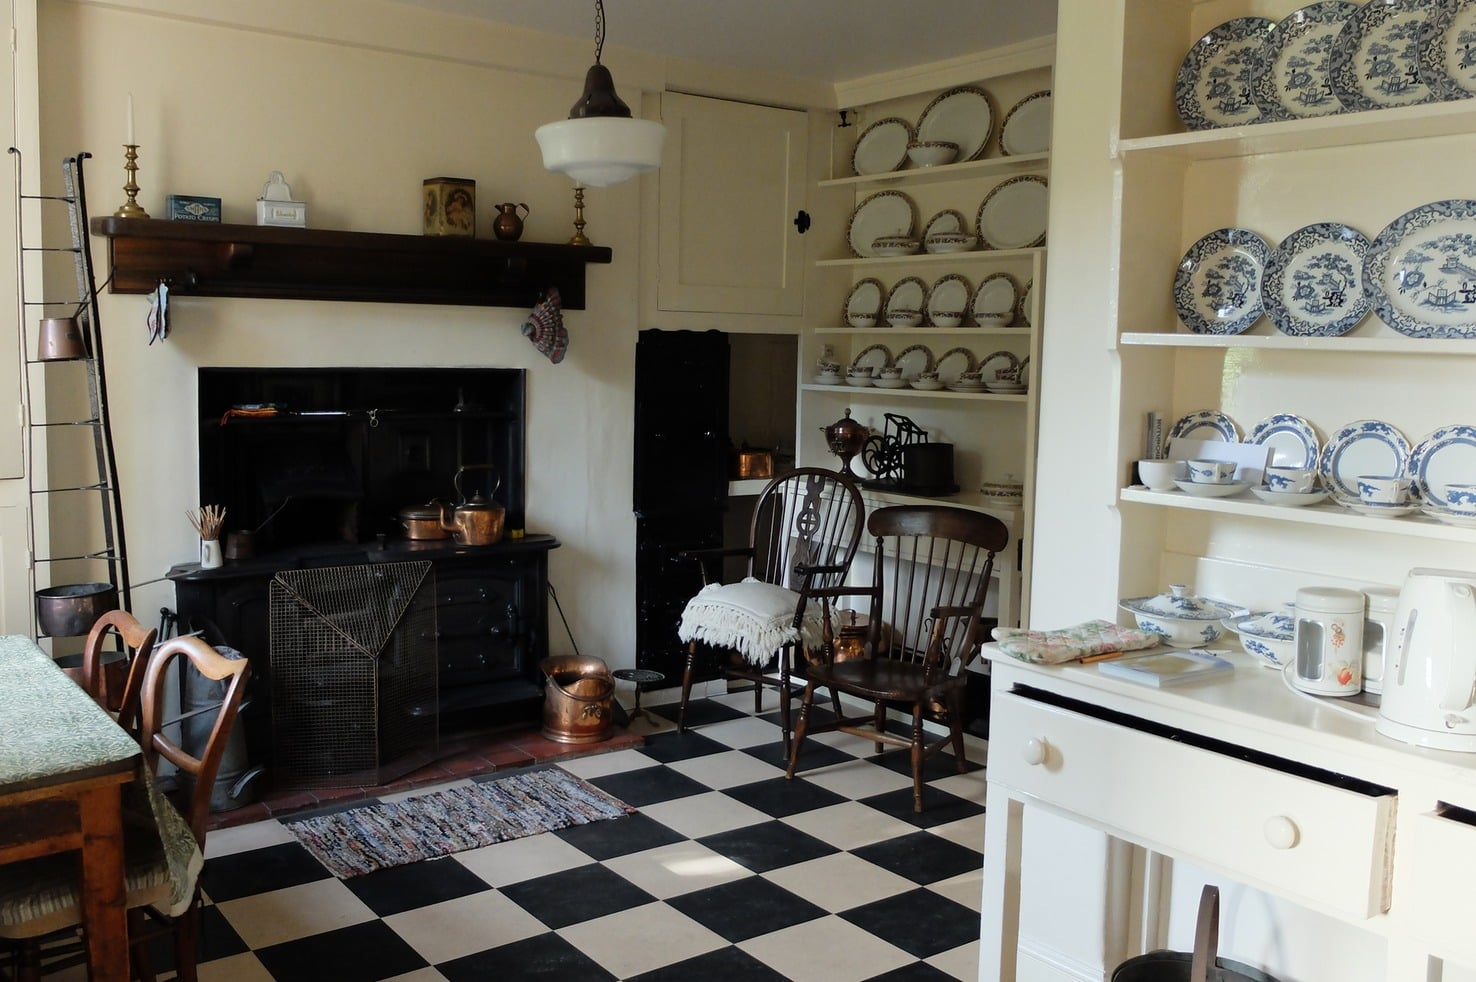 The Victorian kitchen at Reveley Lodge